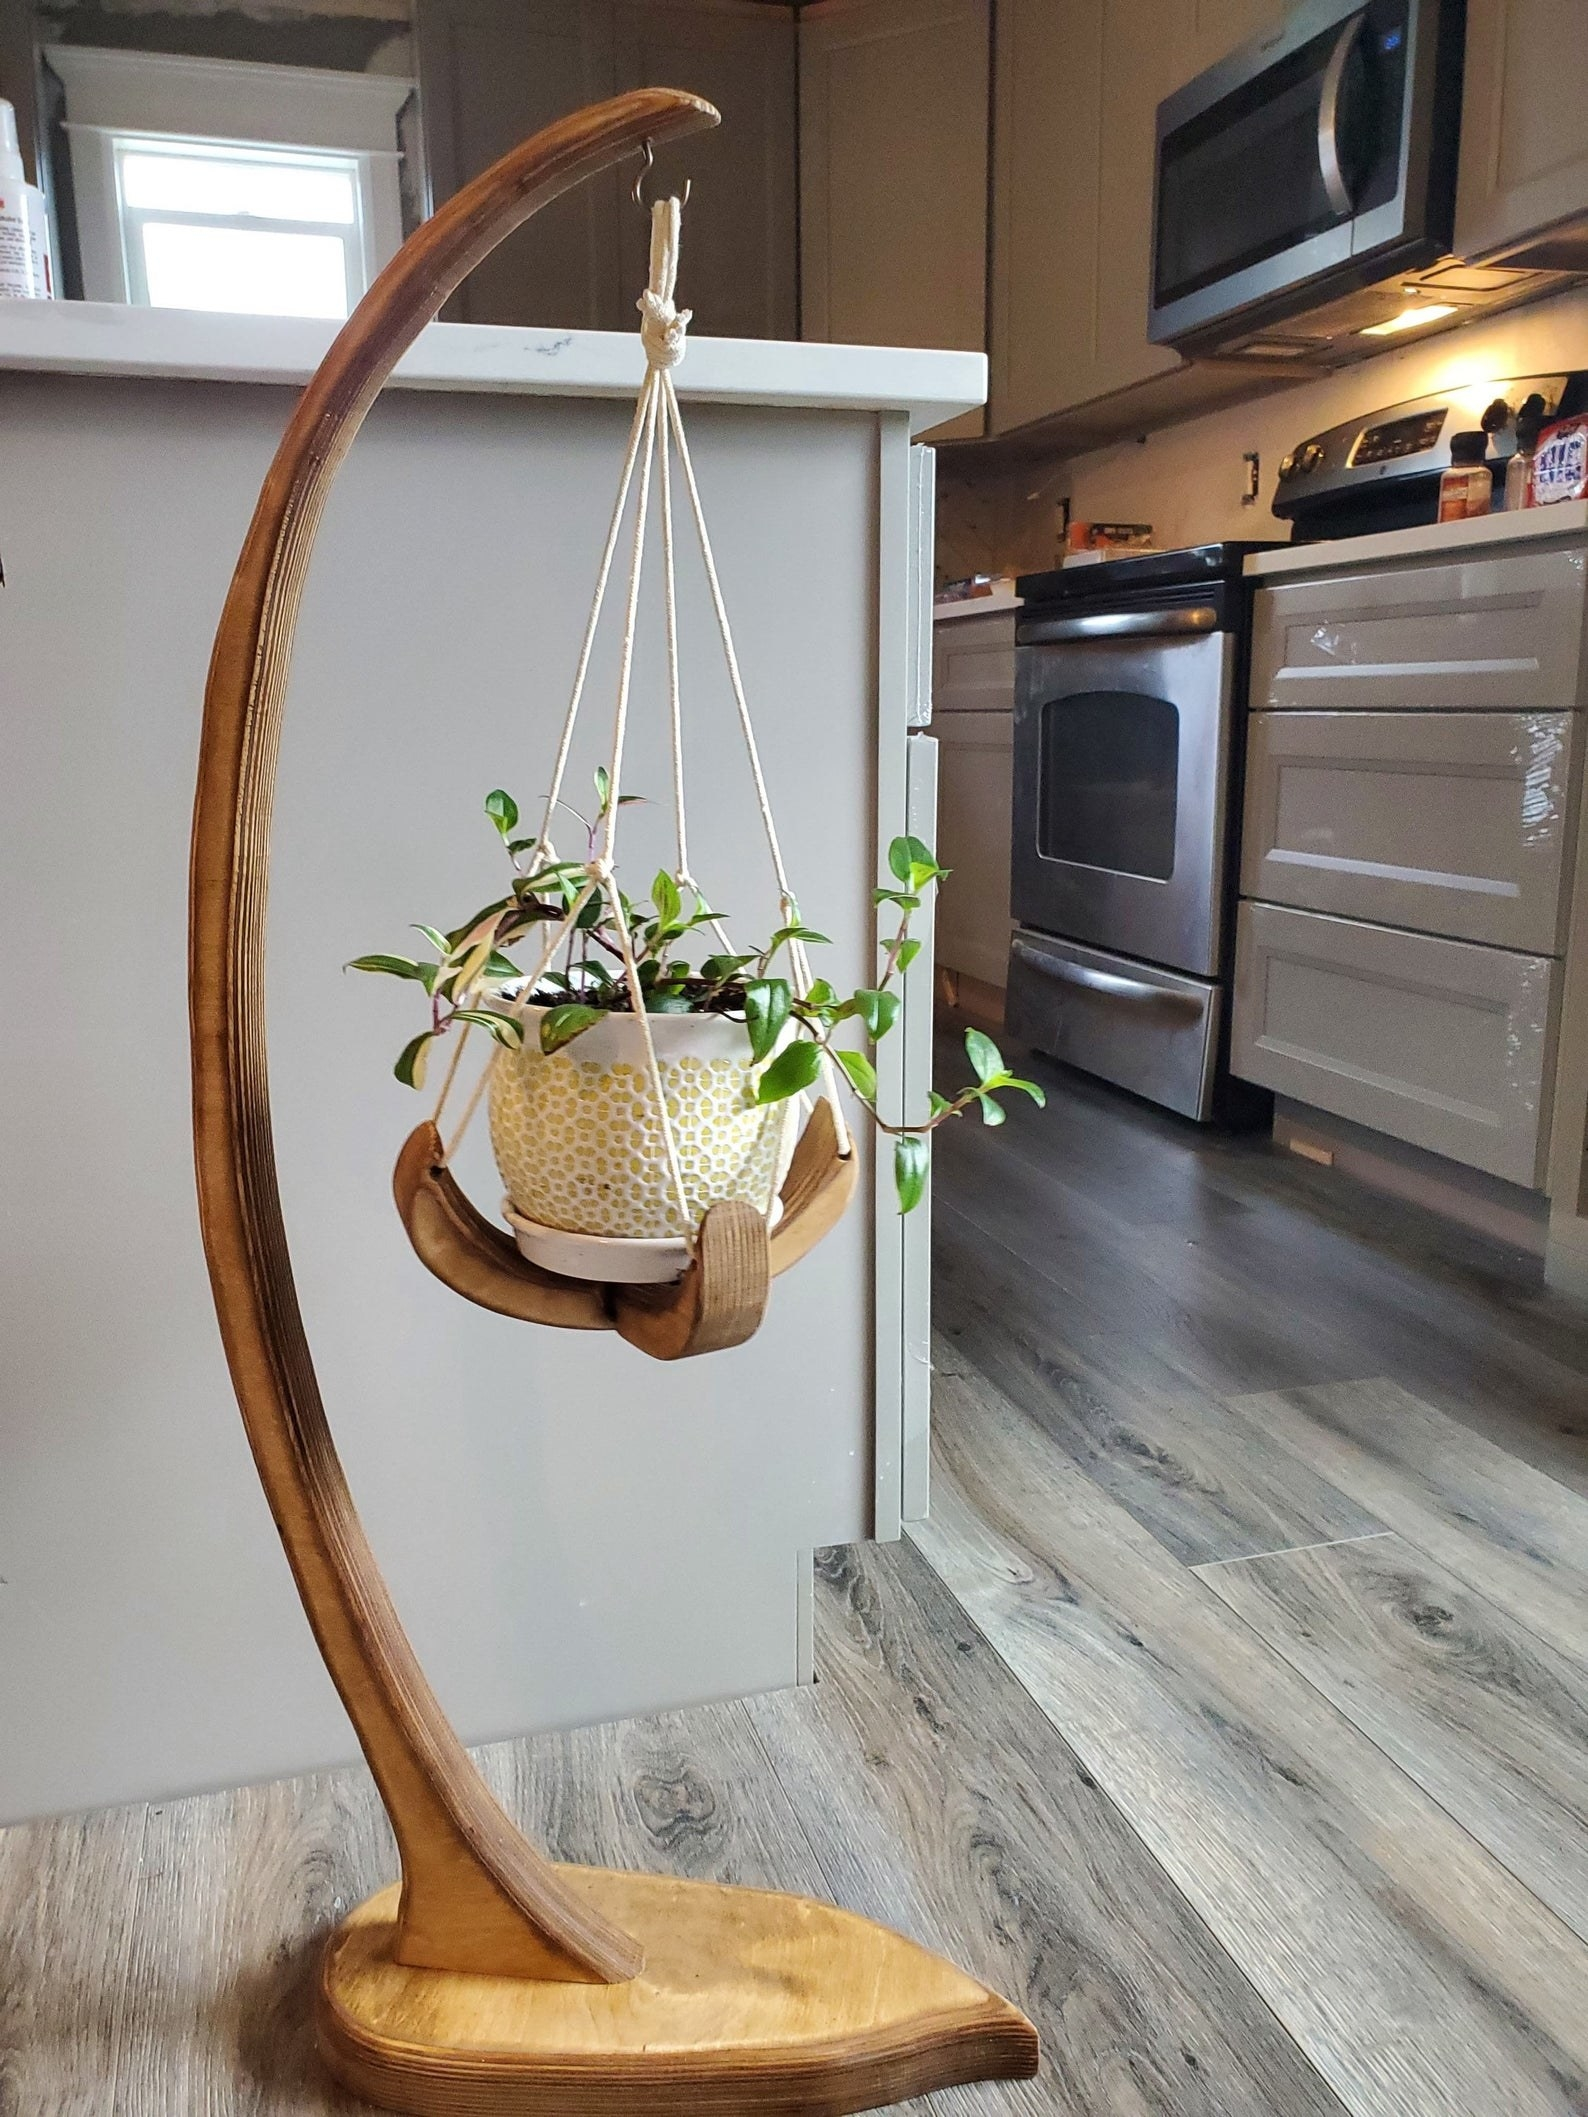 wooden plant stand that curves up and has a hanging vessel to put to put a plant in at the tip of the top